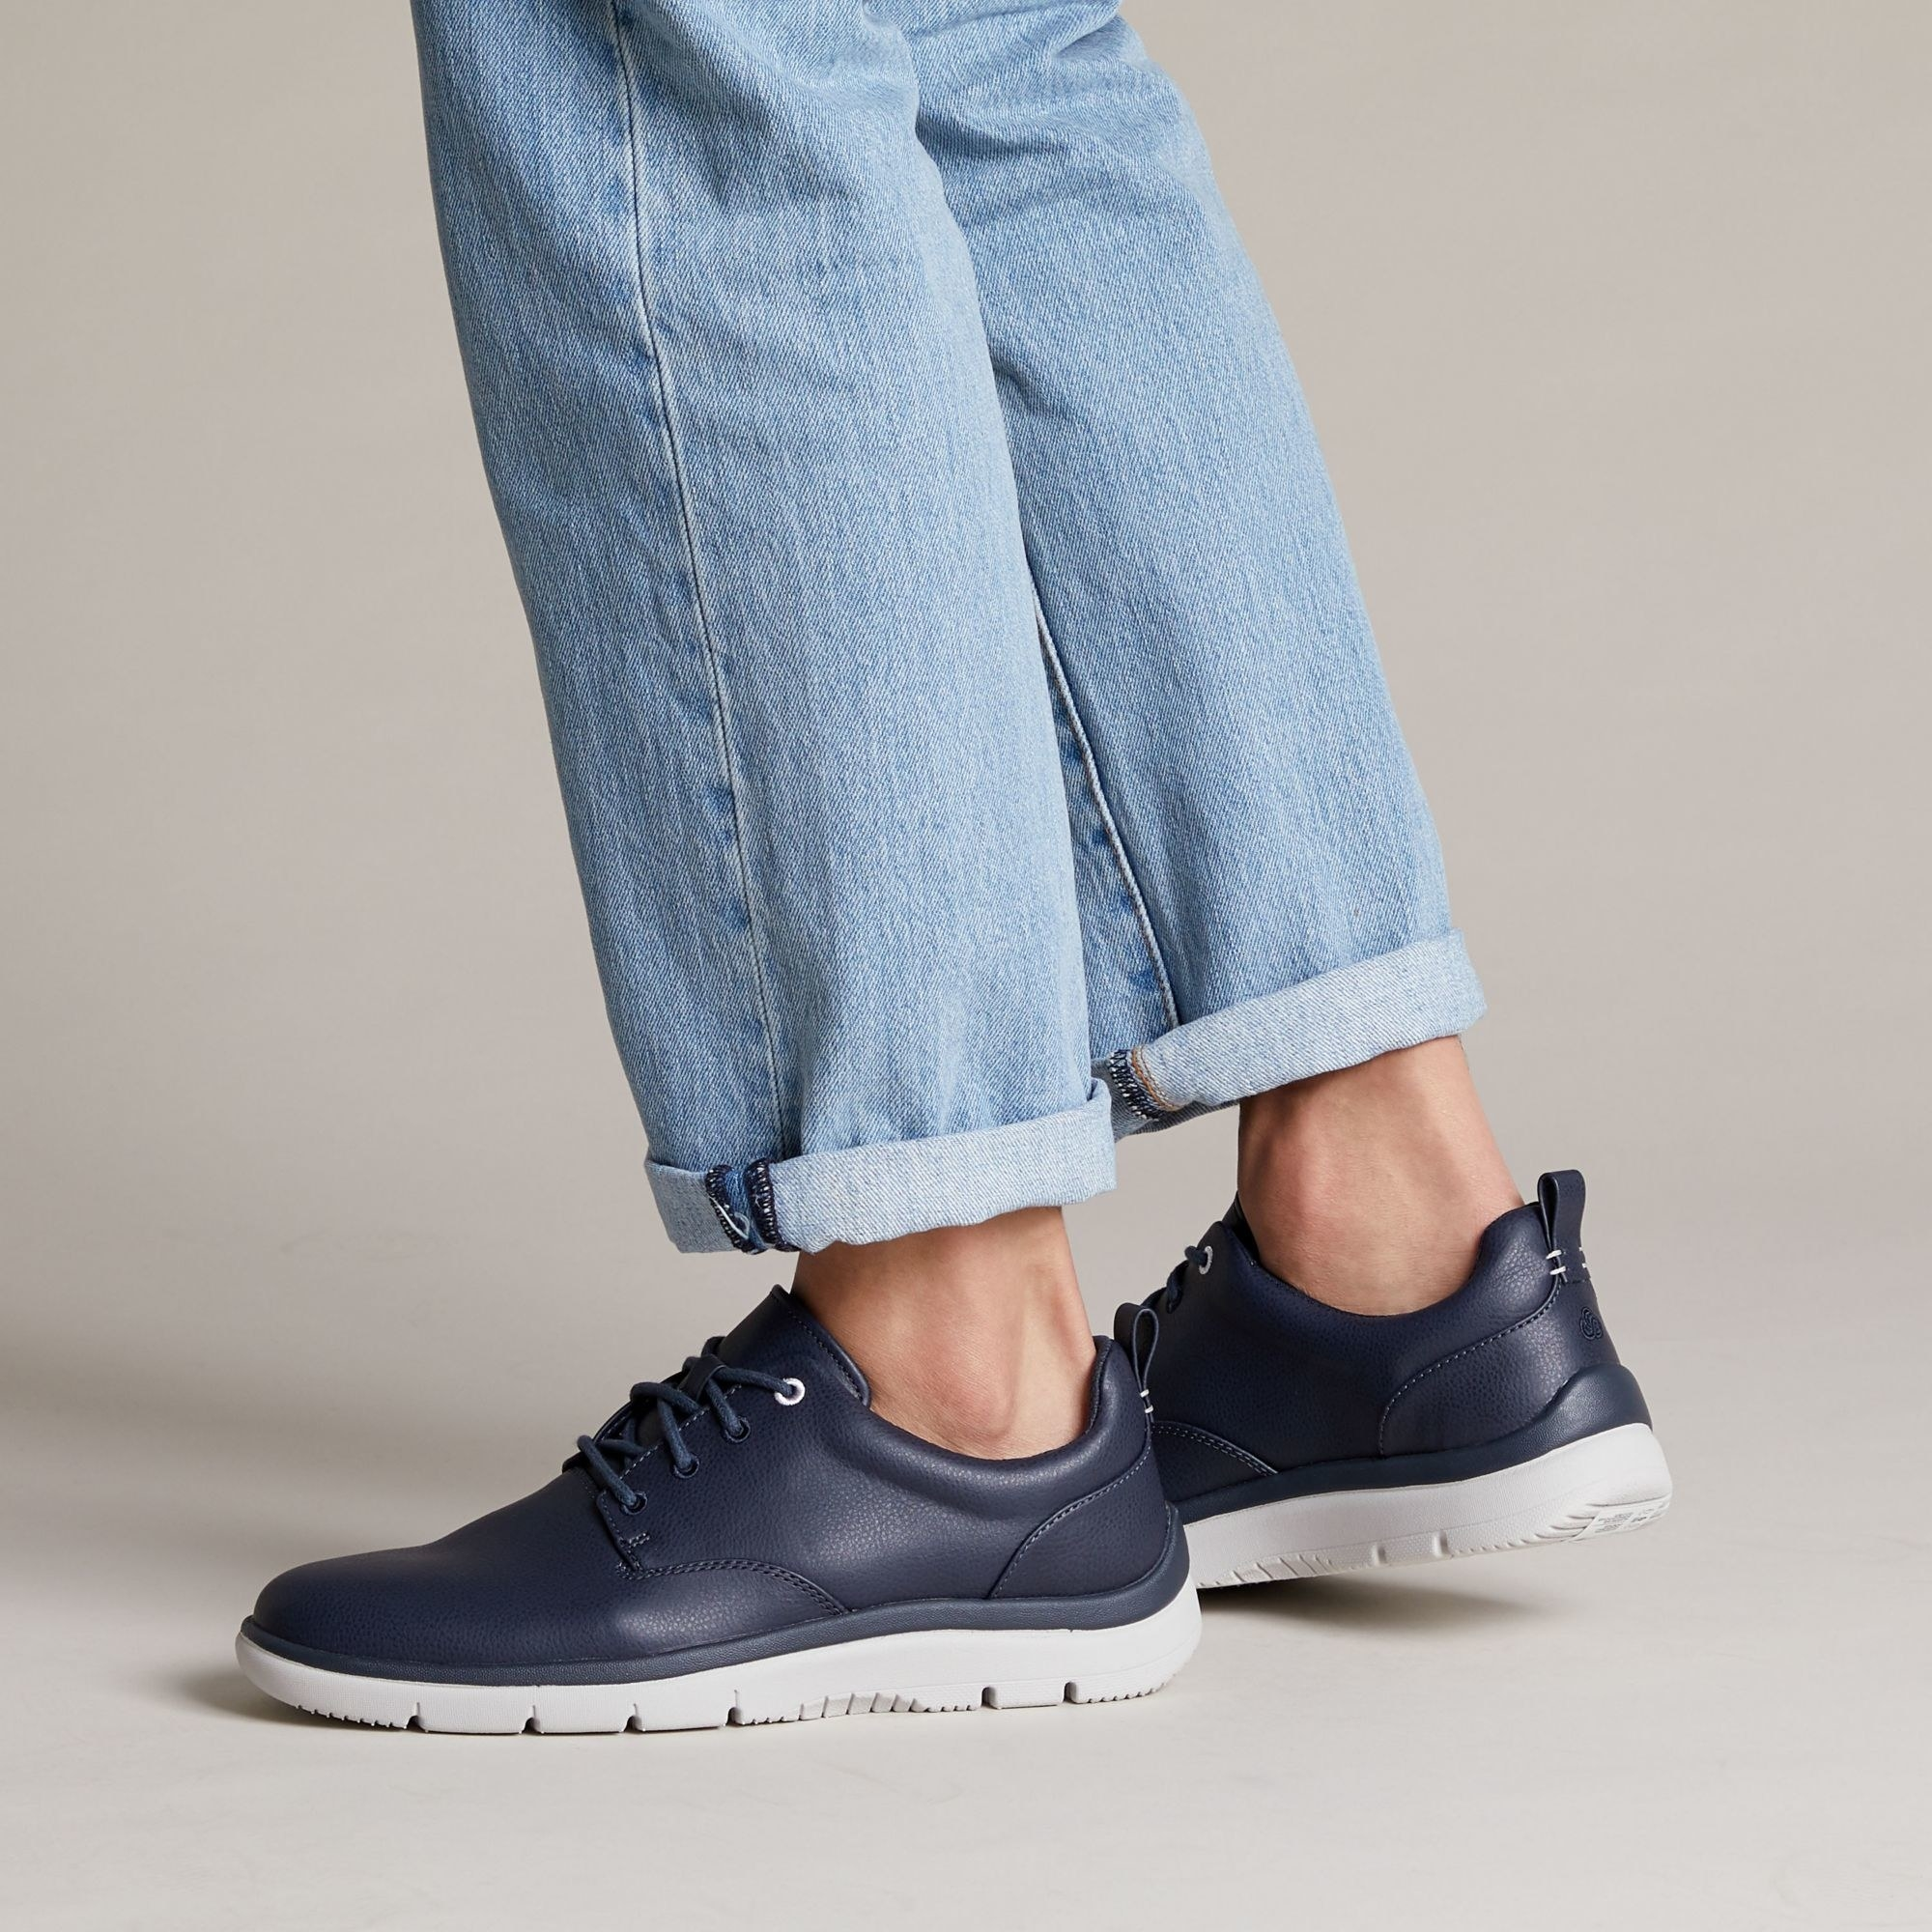 navy sneakers with white soles